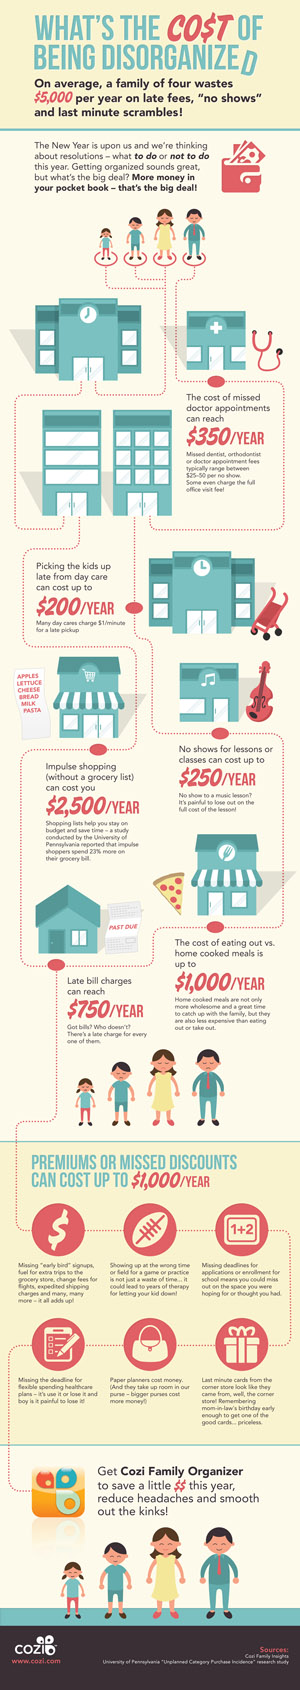 The High Cost of Disorganization Infographic